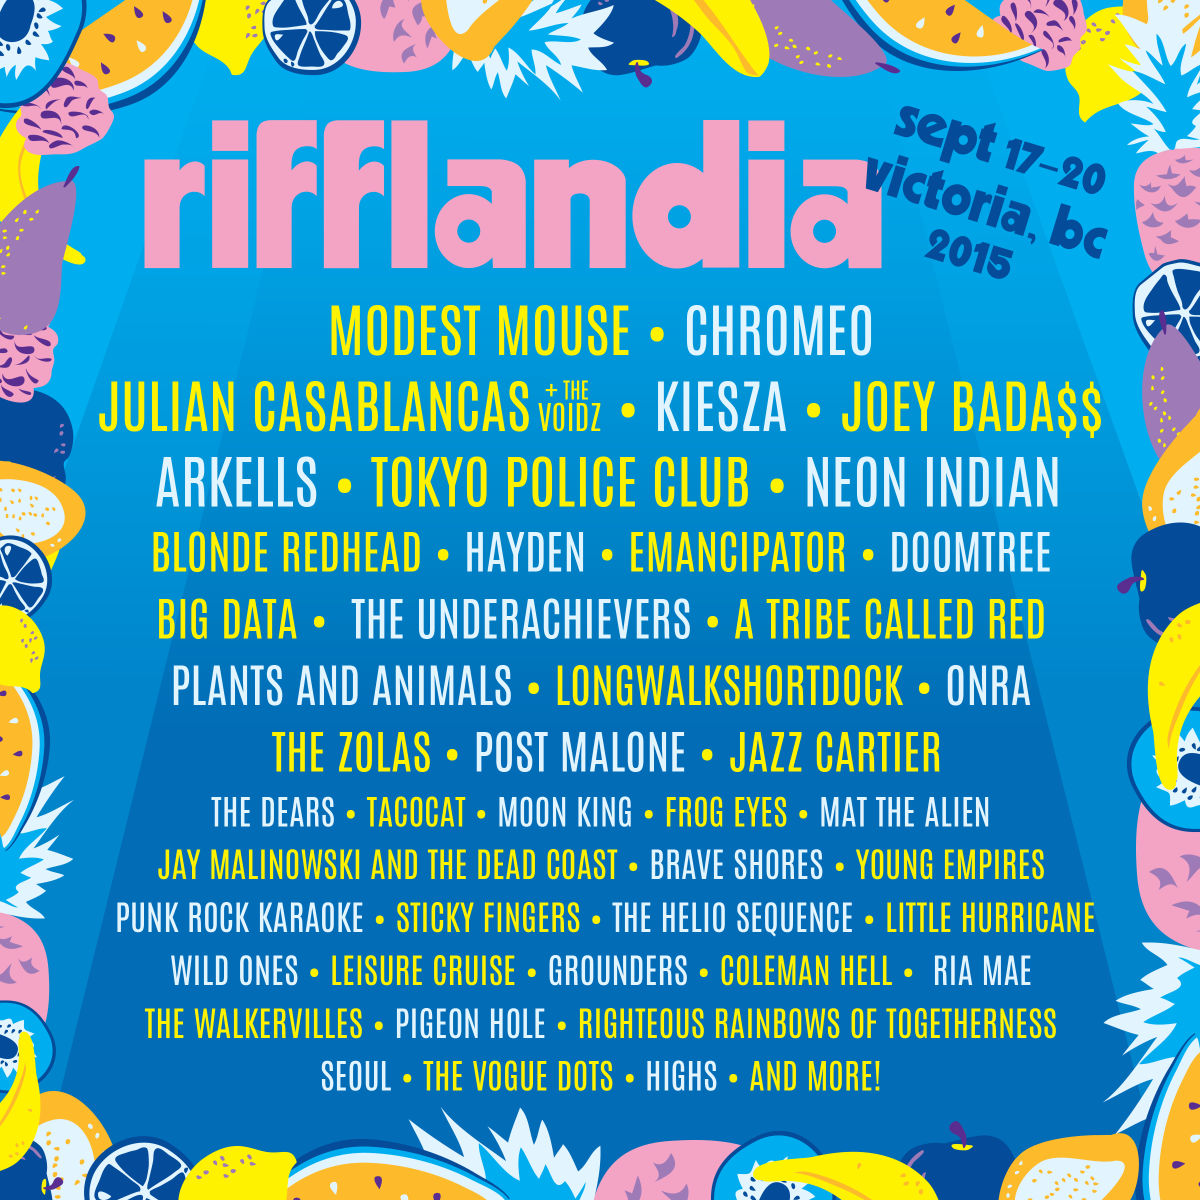 Another 24 artists announced! See you at Rifflandia this September 17-20! #Riff2015 http://t.co/mW8XV6g9ns